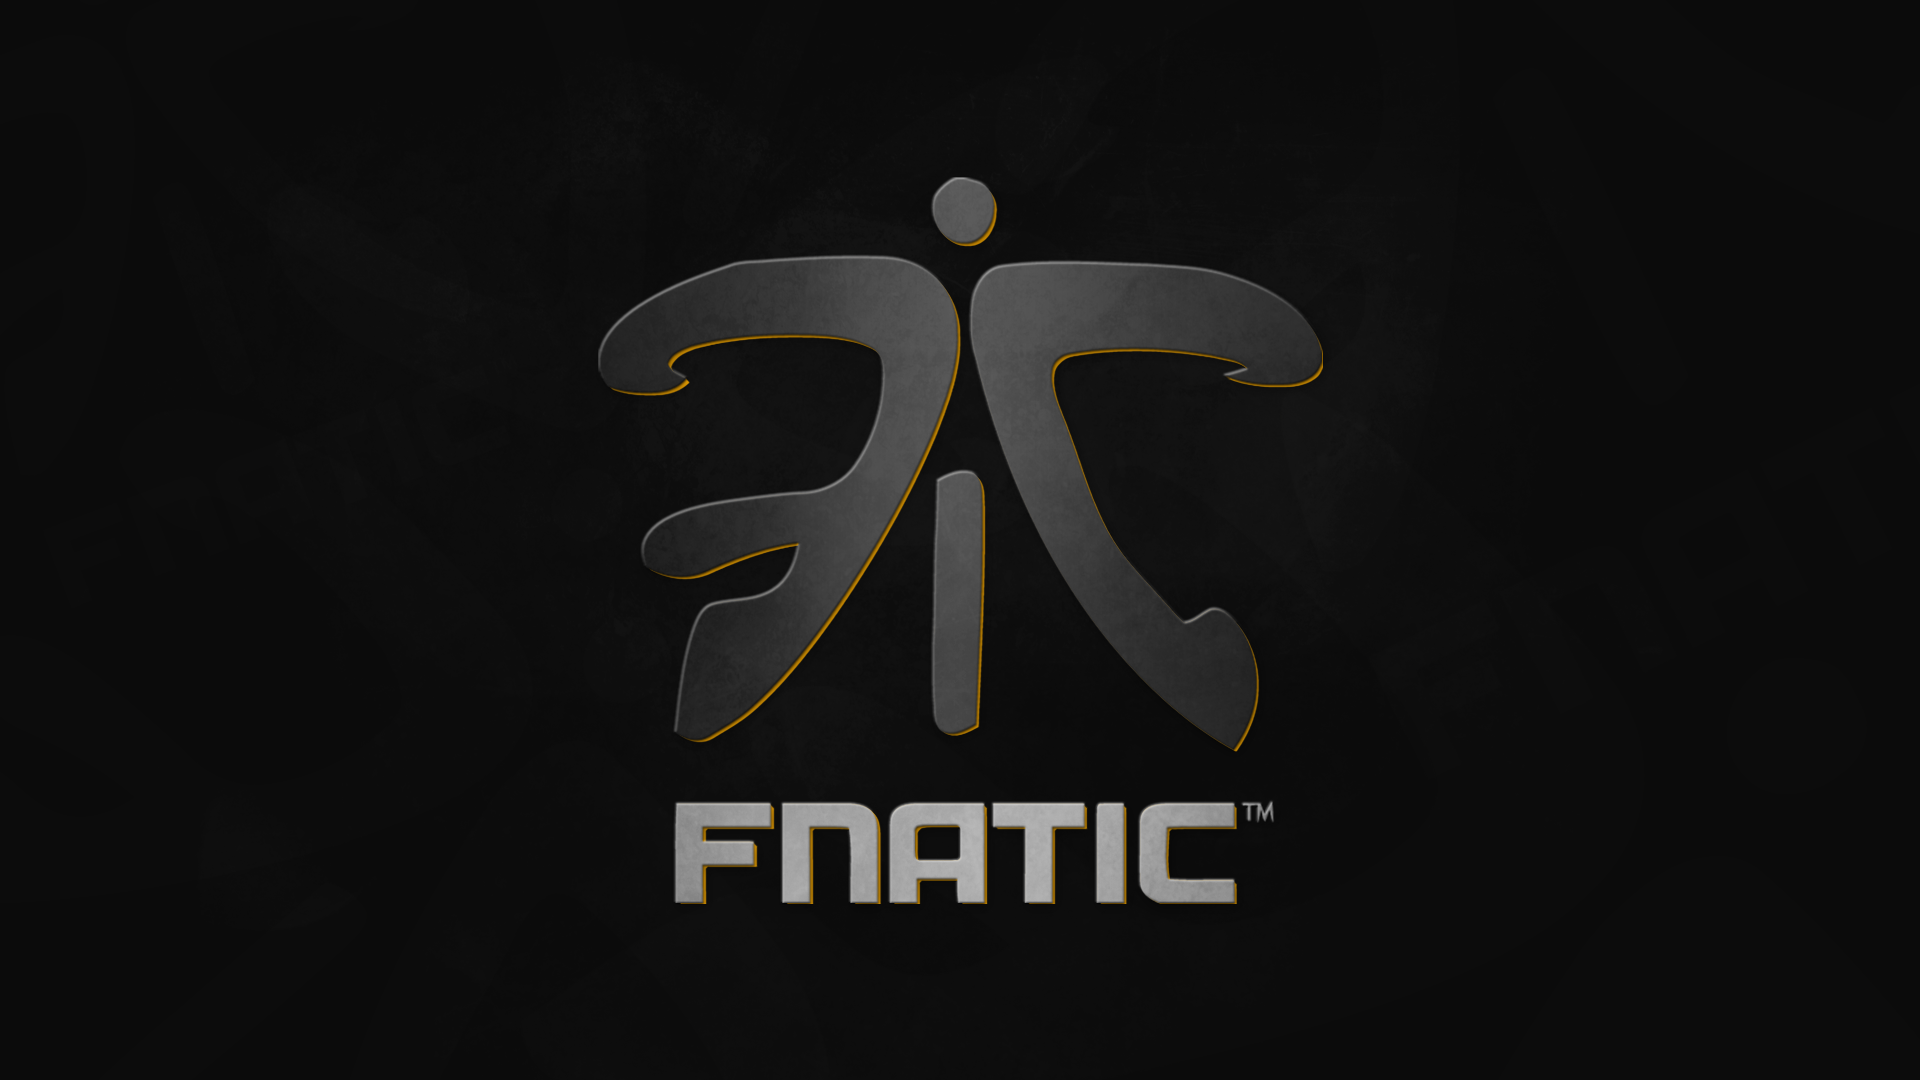 Fnatic Wallpaper wallpaper